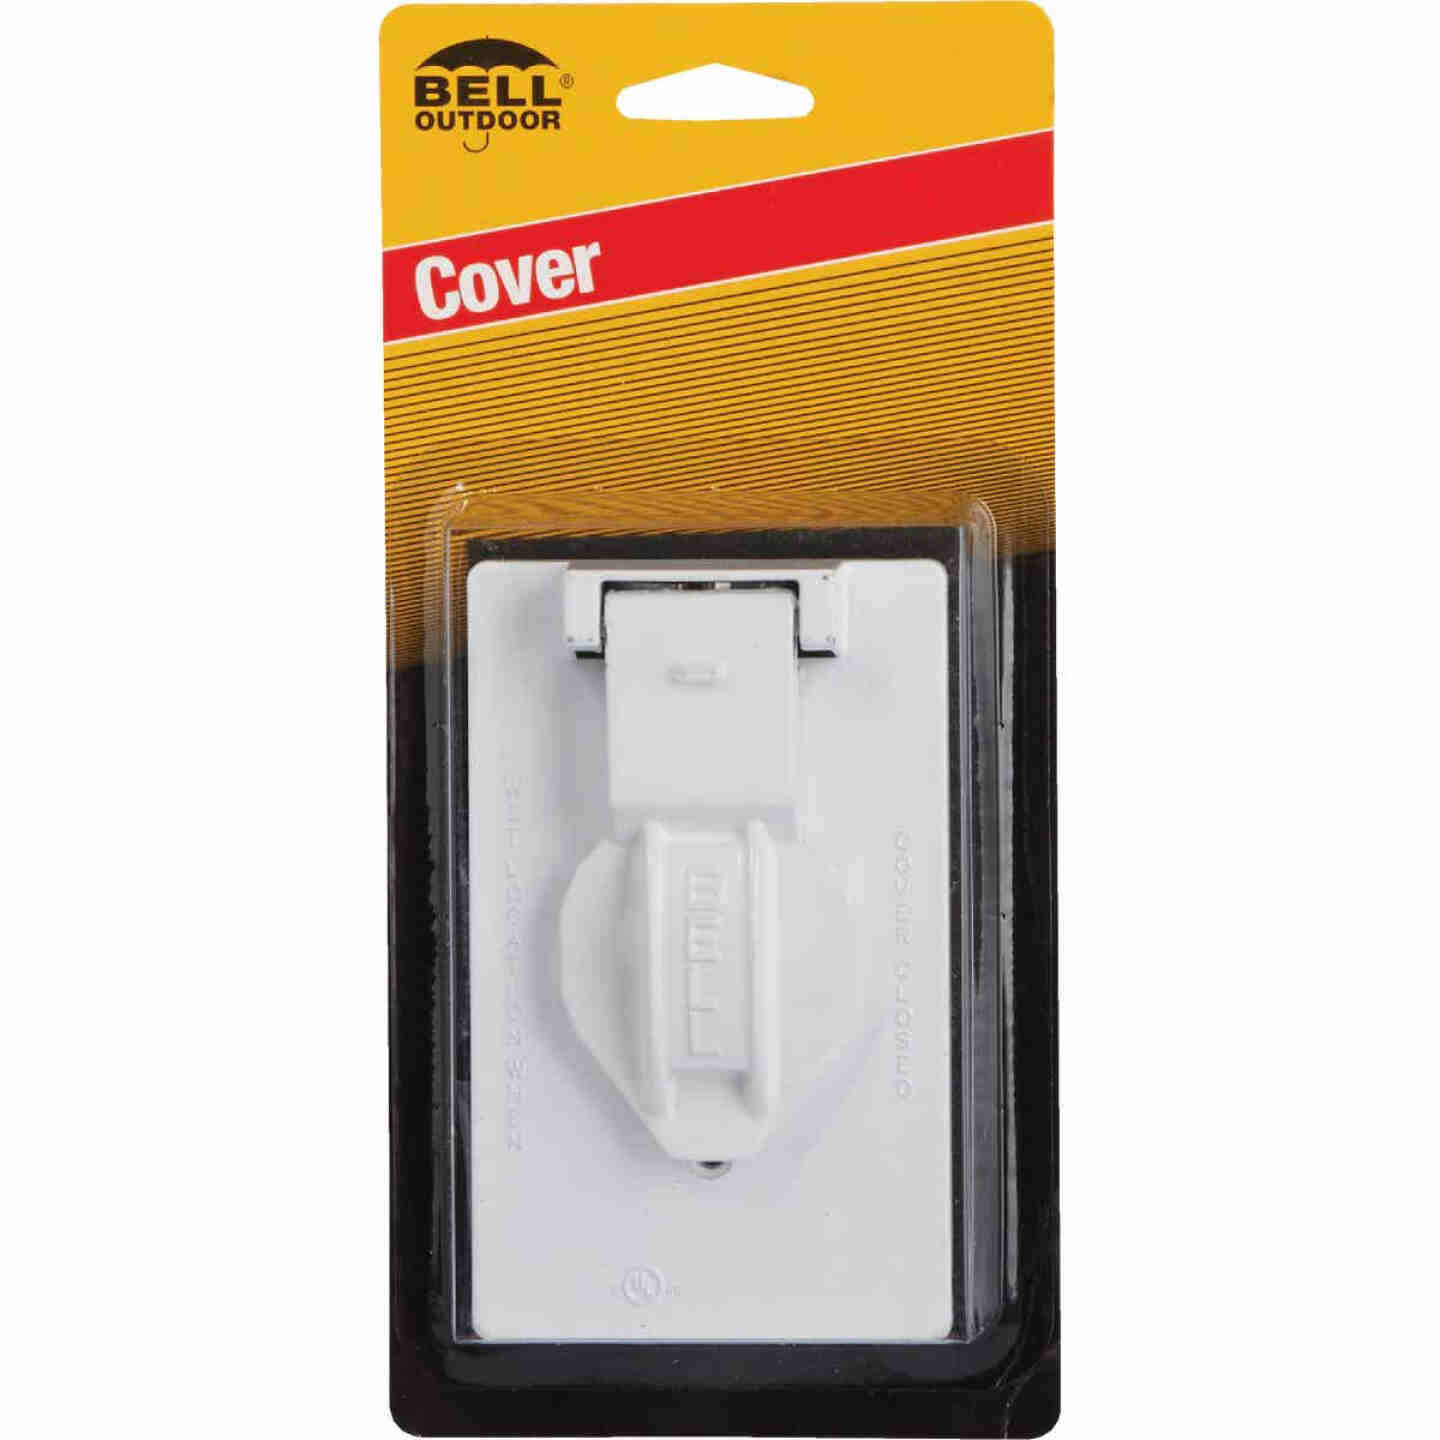 Hubbell Single Gang Vertical Corrosion Resistant Aluminum Weatherproof Electrical Cover Image 2